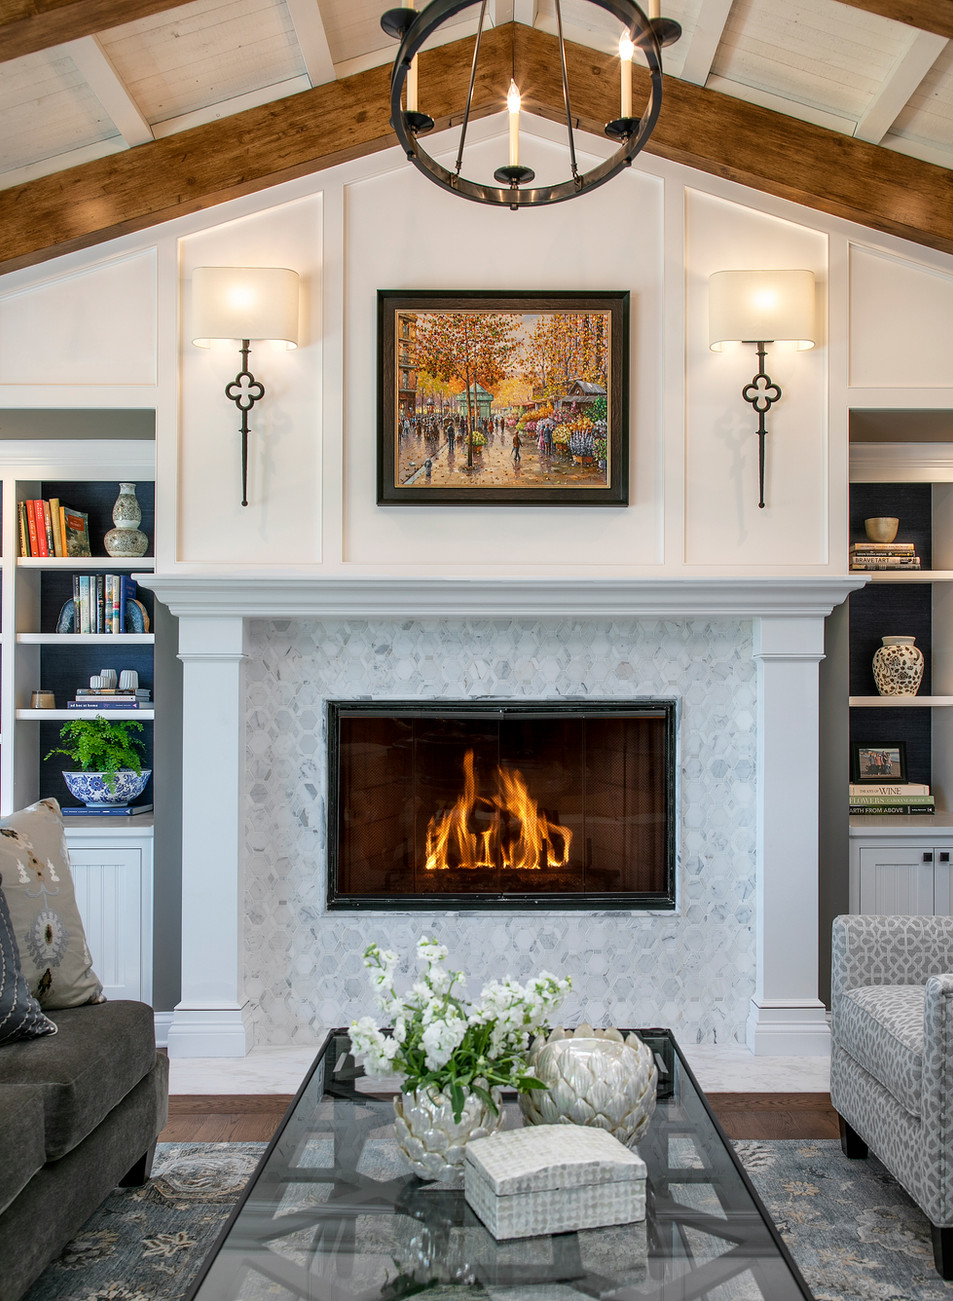 Wine Country Living fireplace with white painted mantle and wood paneling, marble tile surround and built in bookcases. Vaulted ceiling with beams.